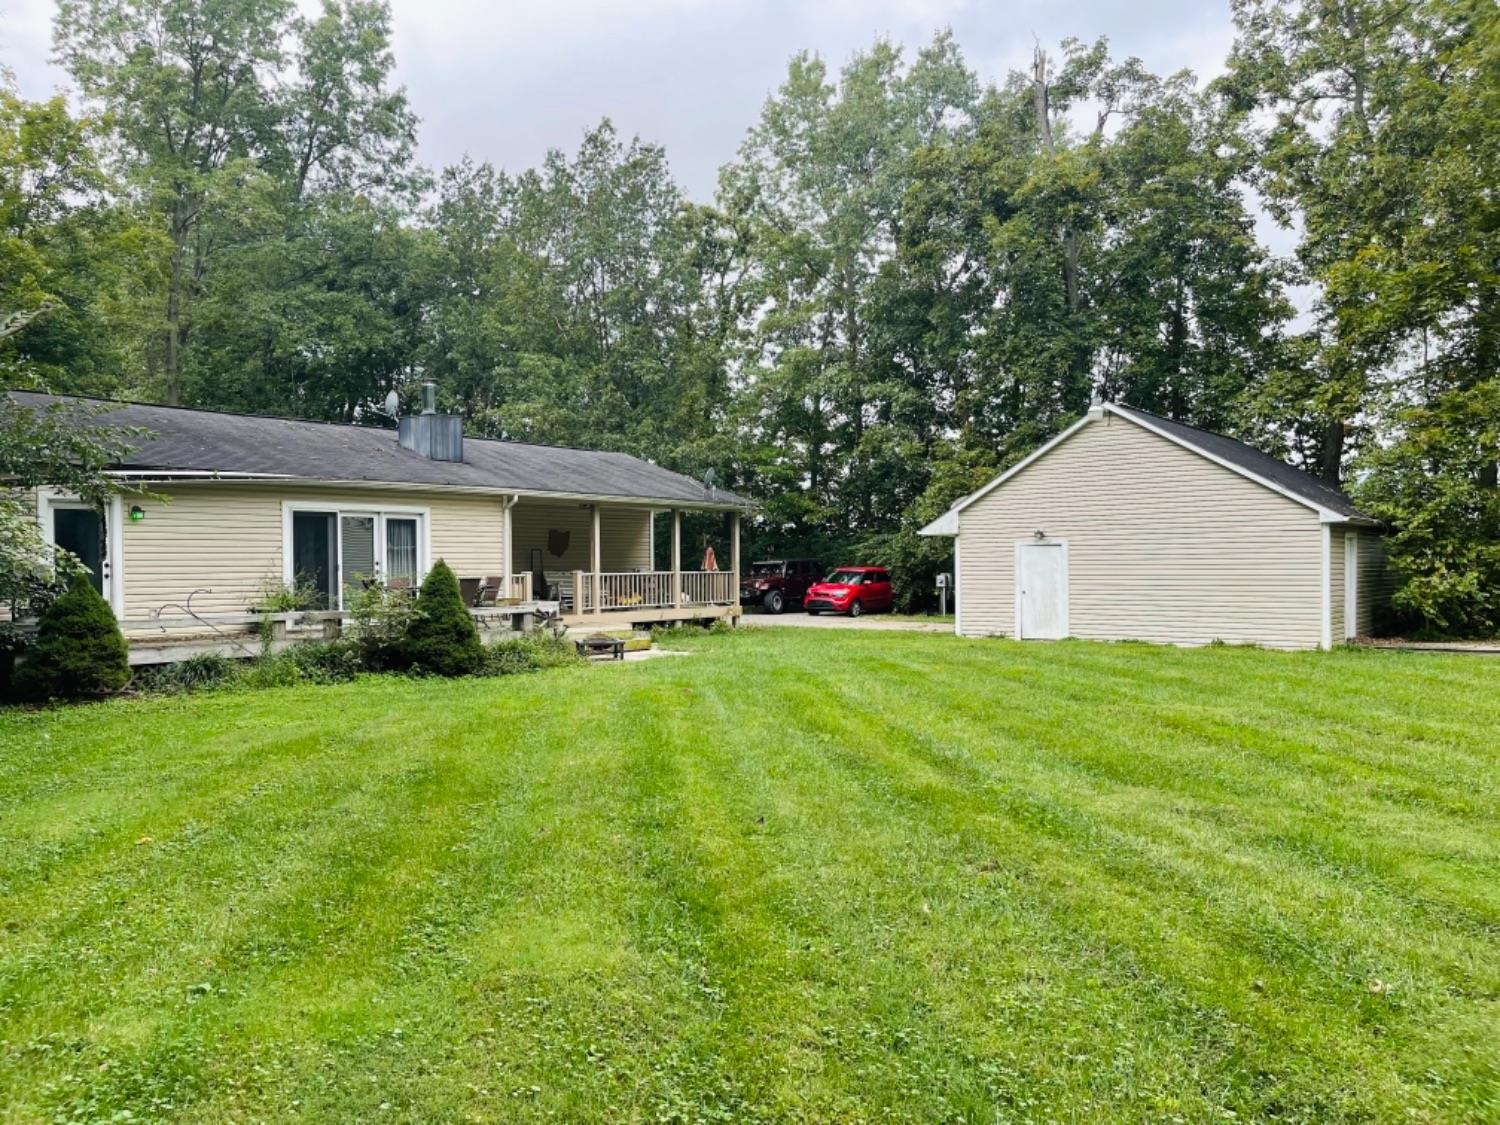 Photo 3 for 7052 Number Five Road Wayne Twp. (Clermont Co.), OH 45162